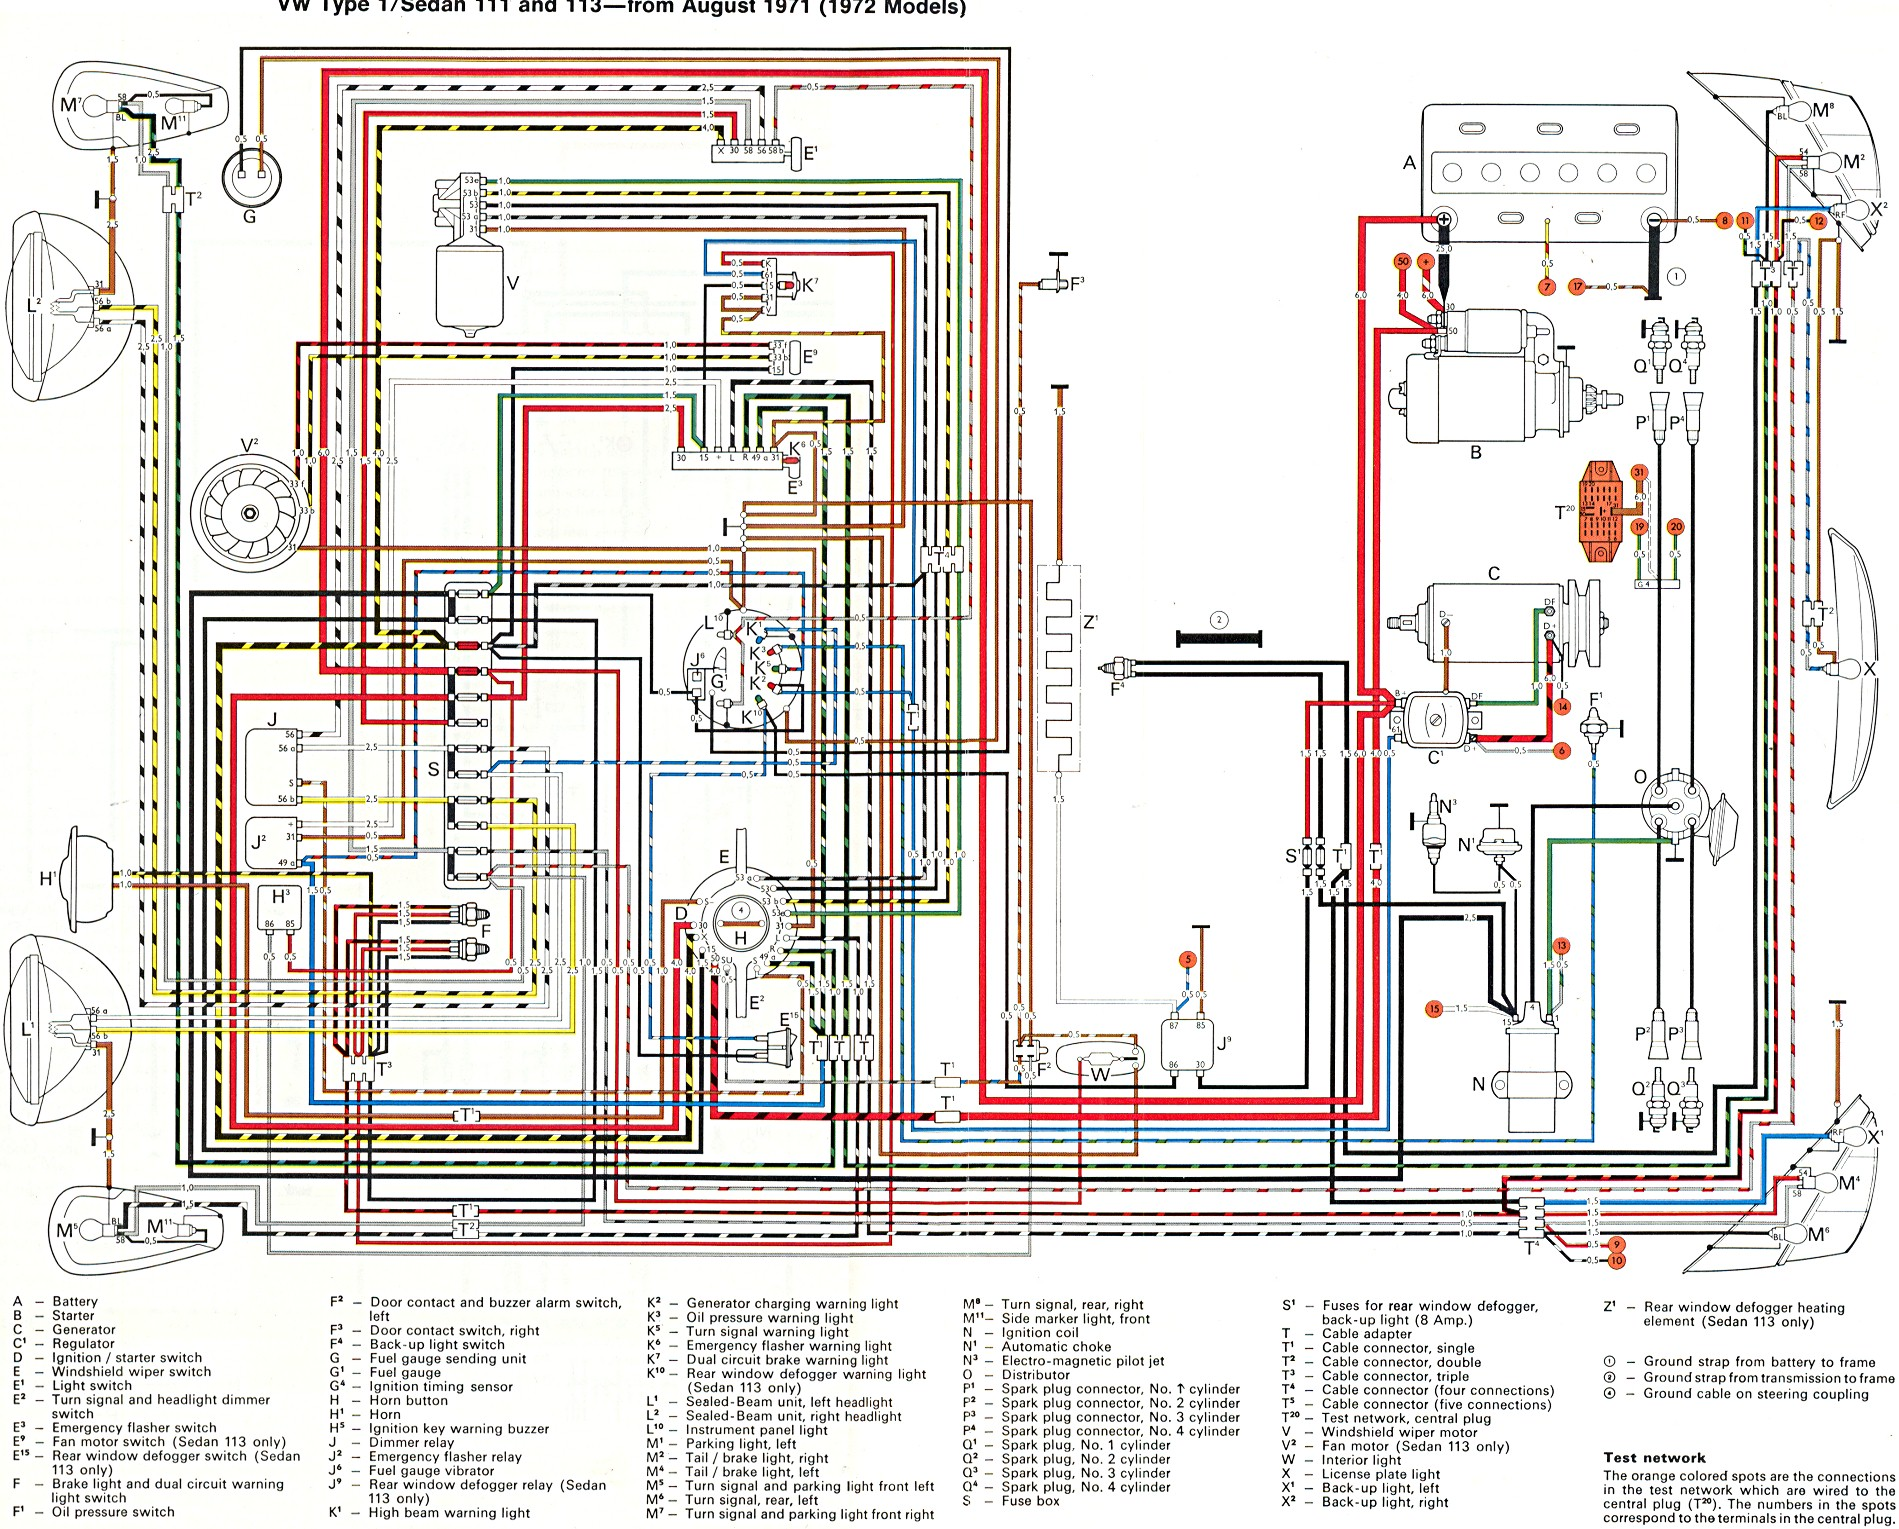 bug_std_super_72 2001 vw beetle wiring diagram 1964 vw beetle wiring diagram 1970 vw beetle wiring diagram at bayanpartner.co